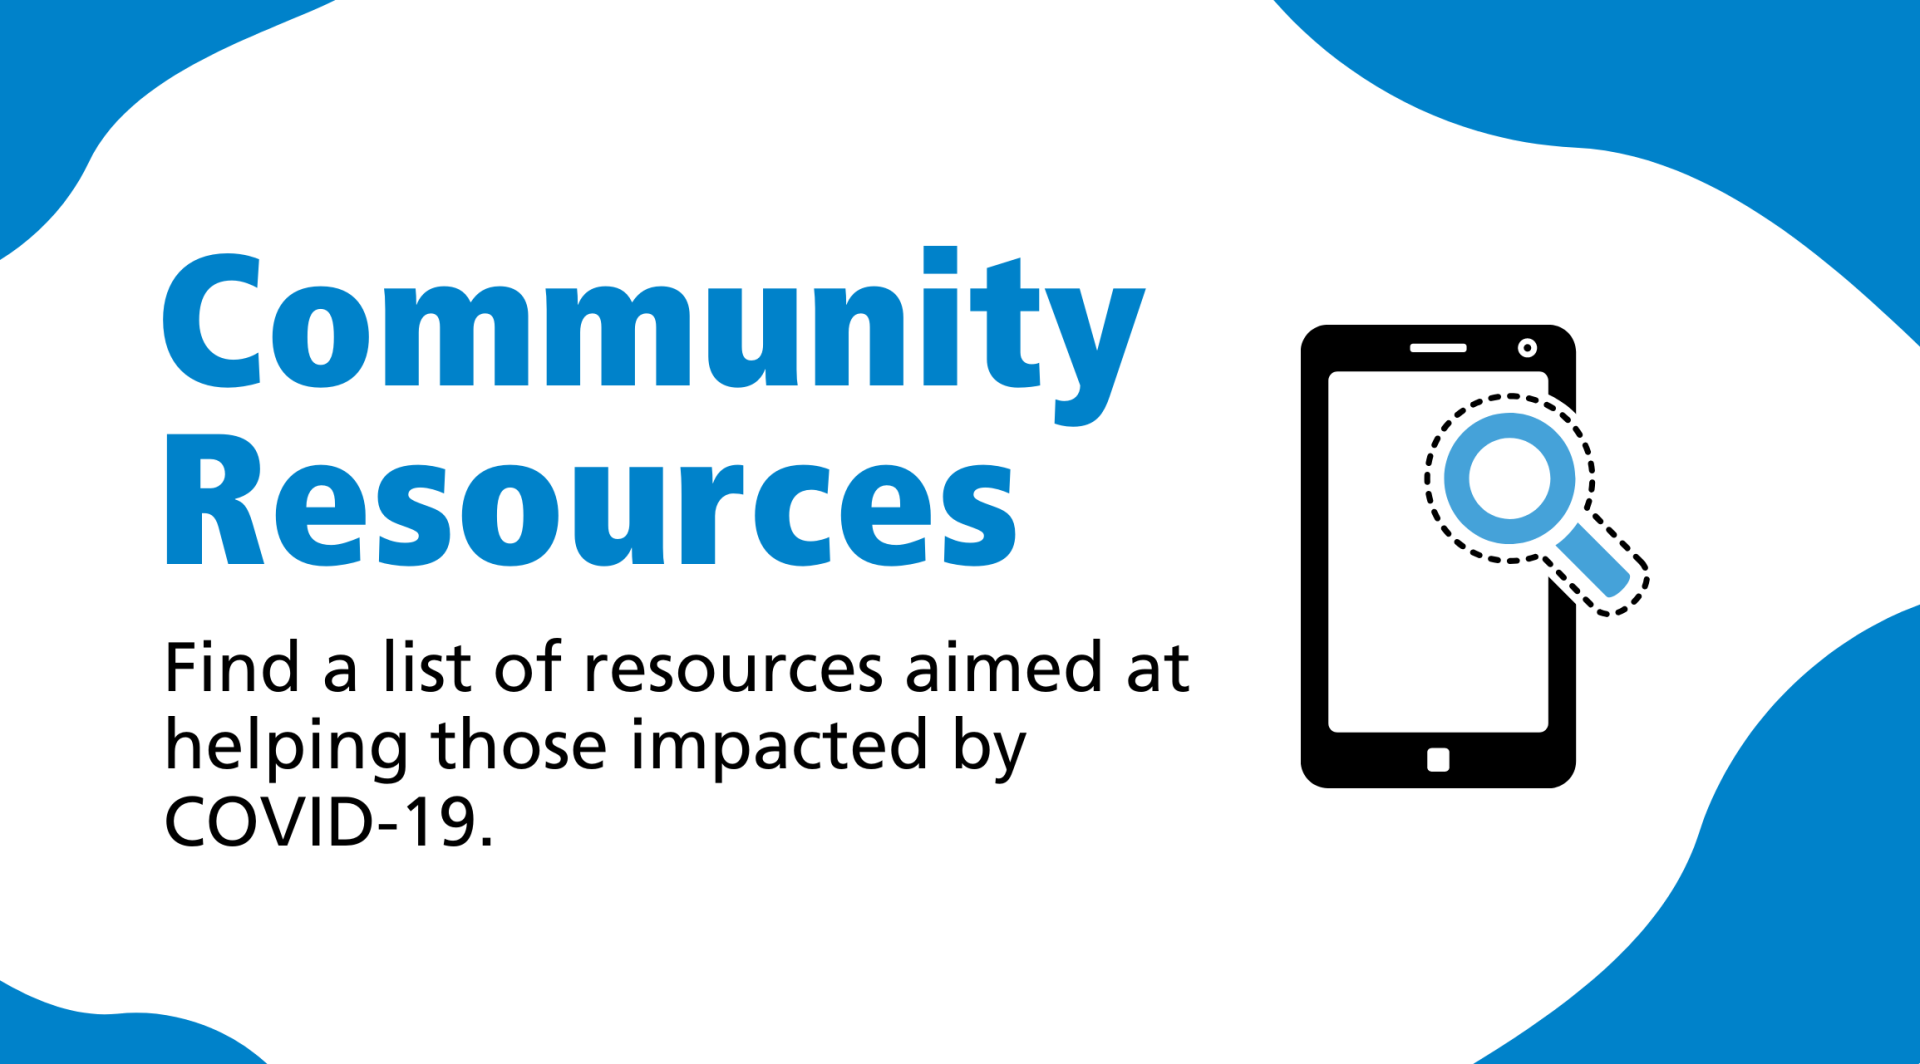 Community Resources: Find a list of resources aimed at helping those impacted by COVID-19.